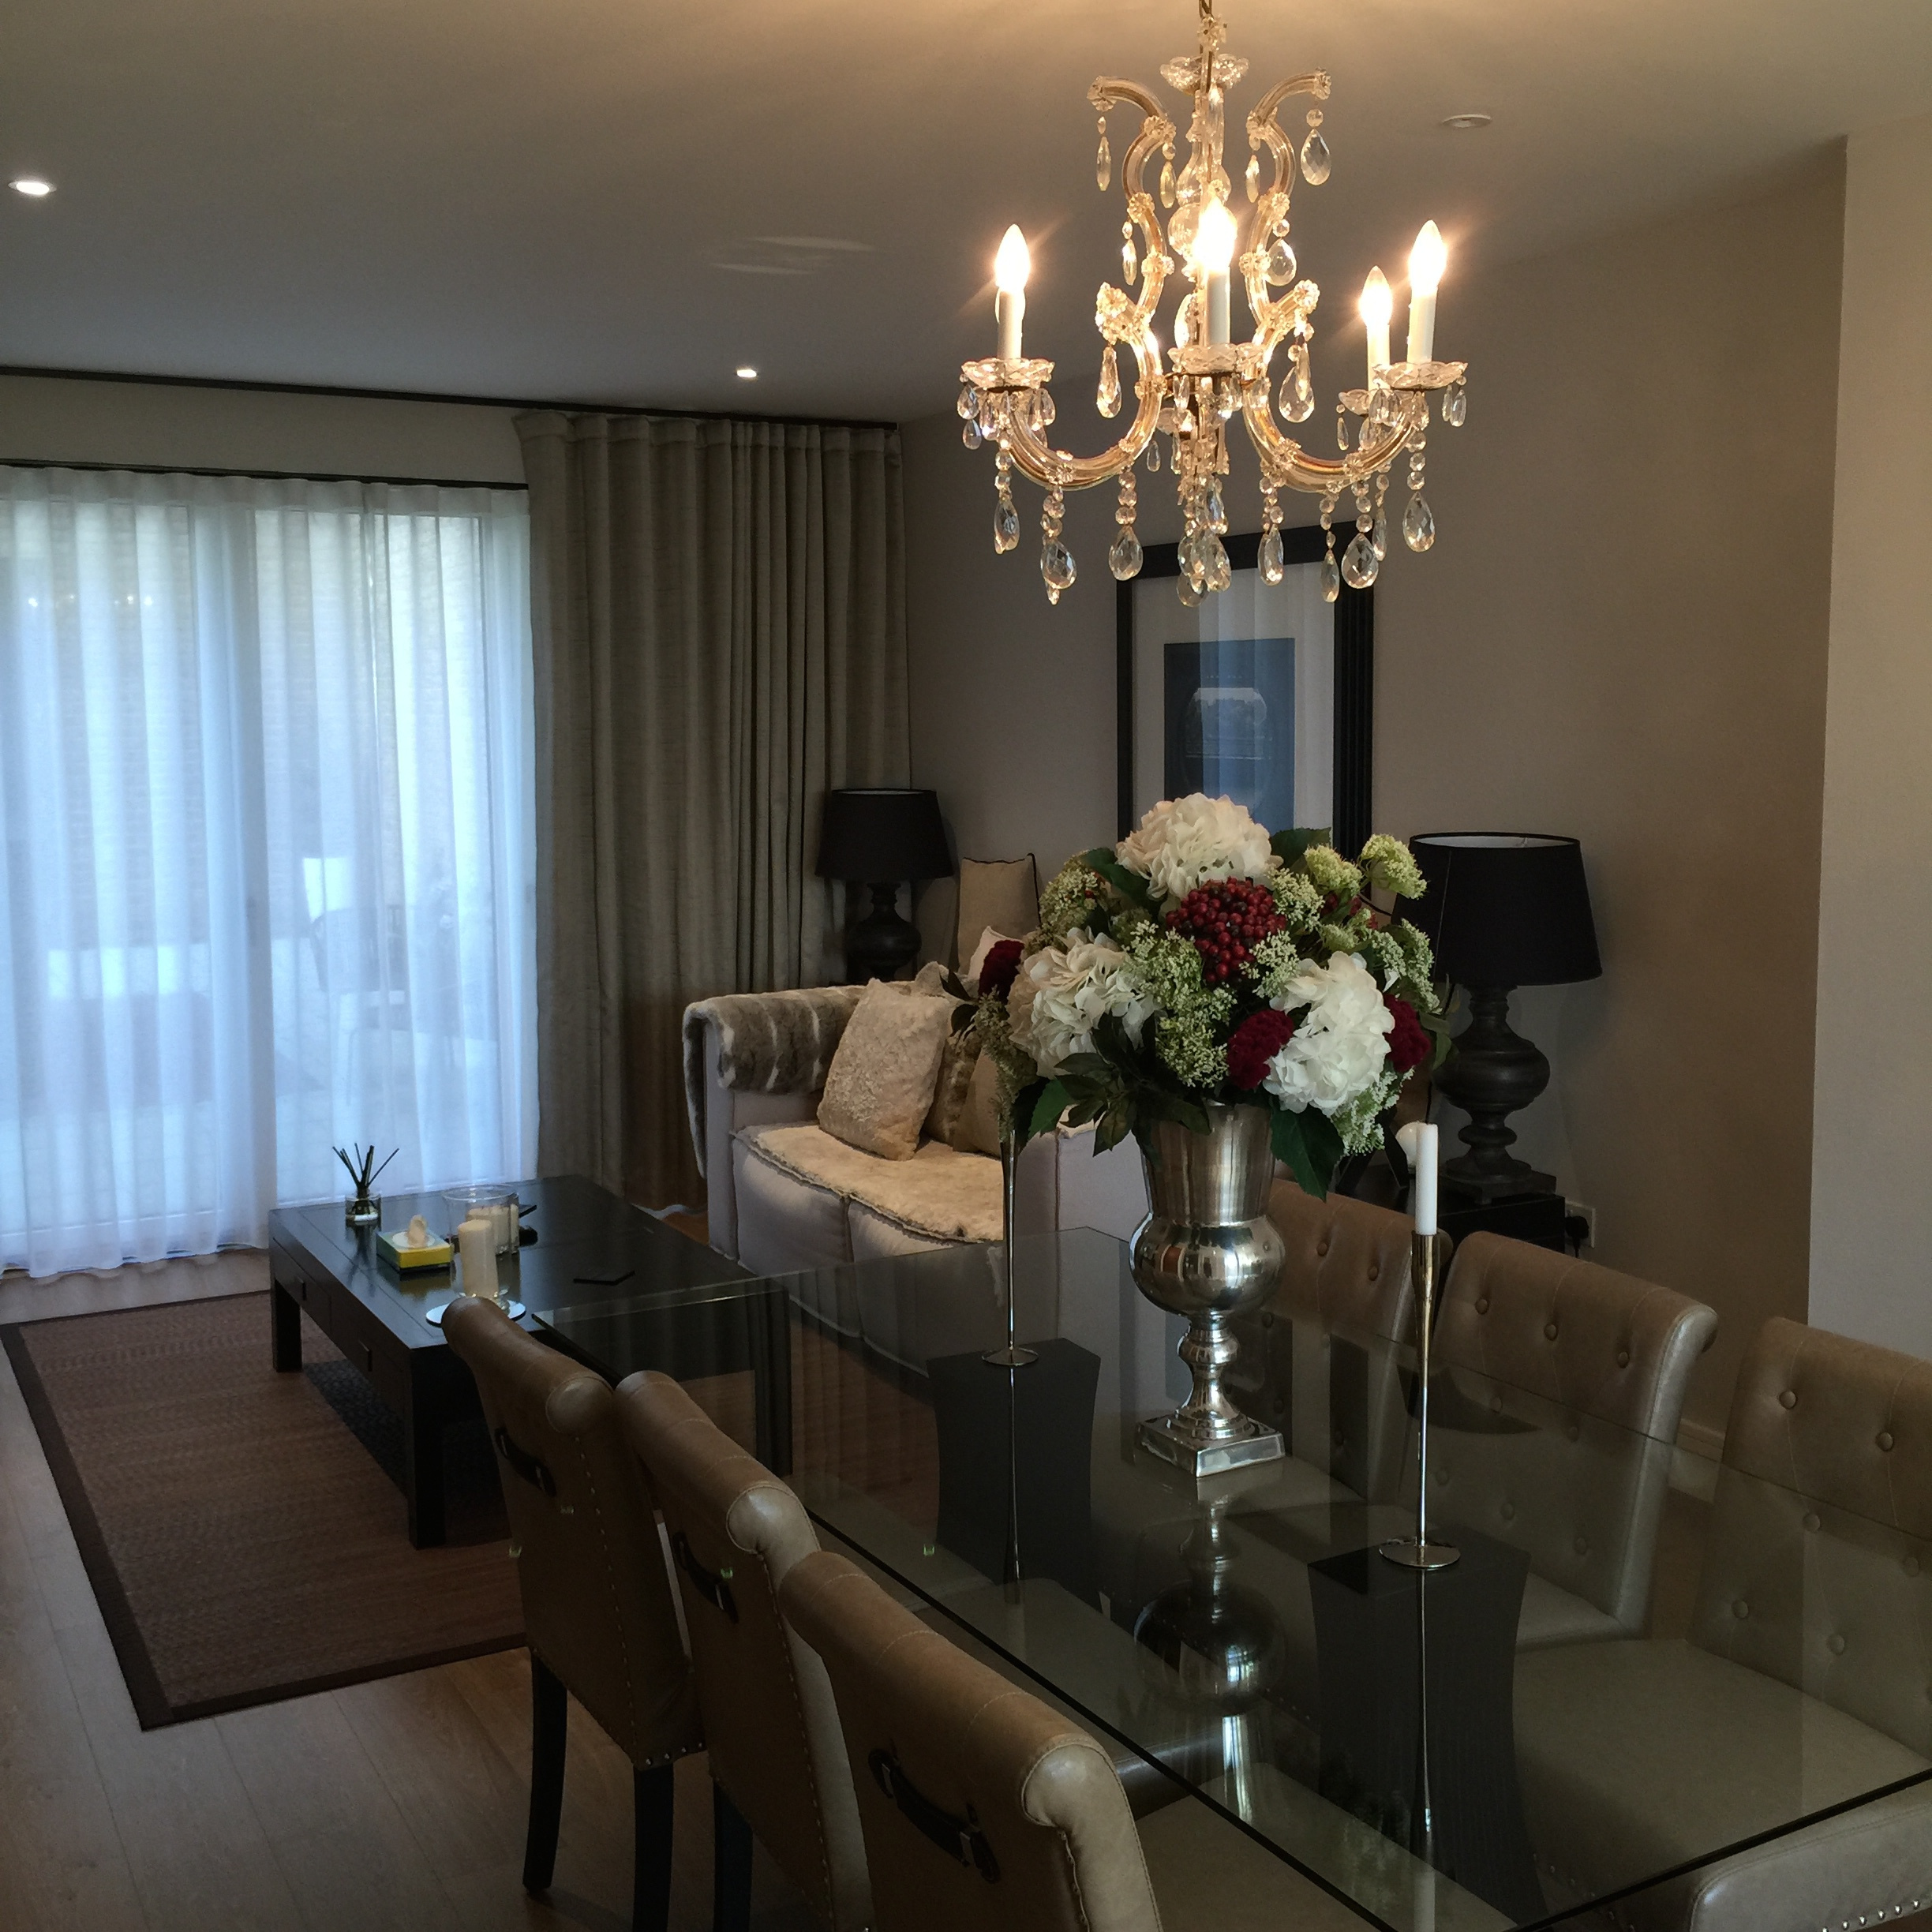 interior design project with the Marie Therese chandelier.